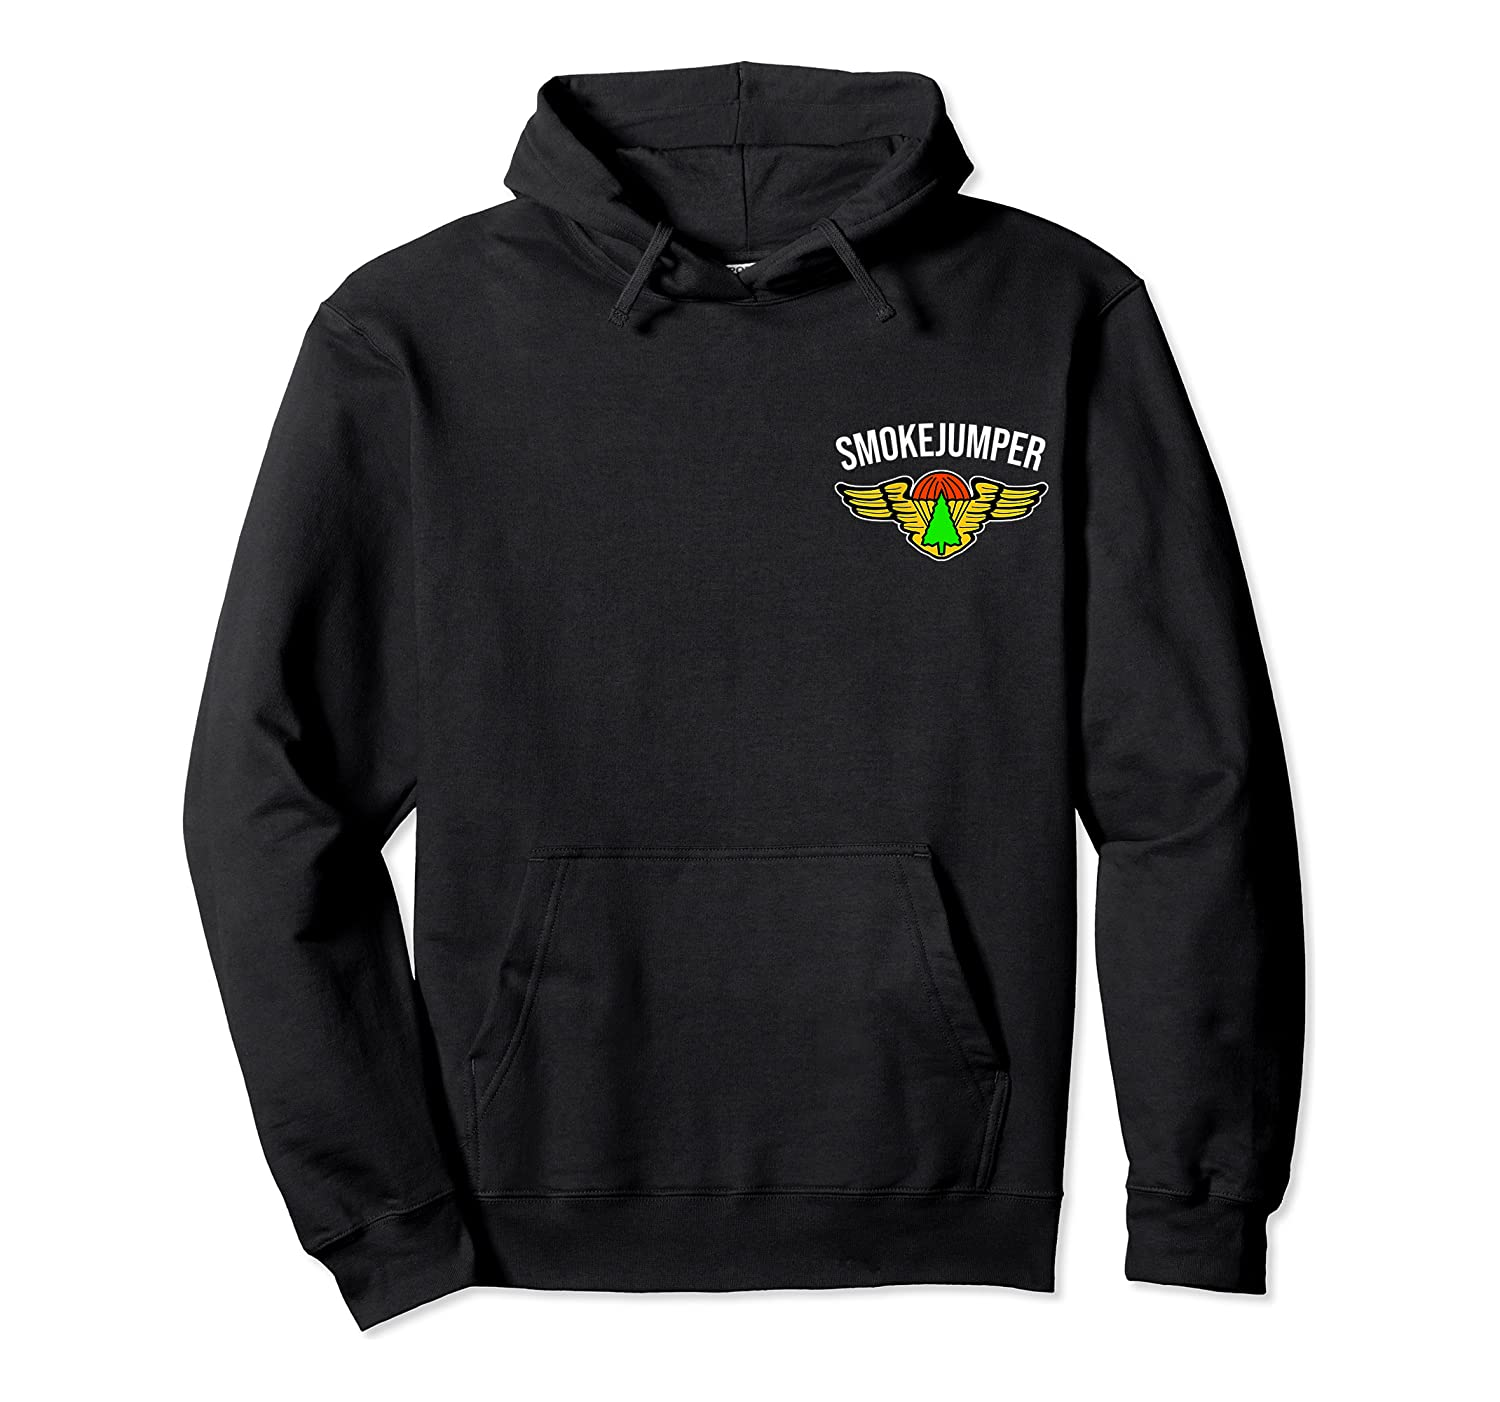 Smokejumper For Shirts Unisex Pullover Hoodie